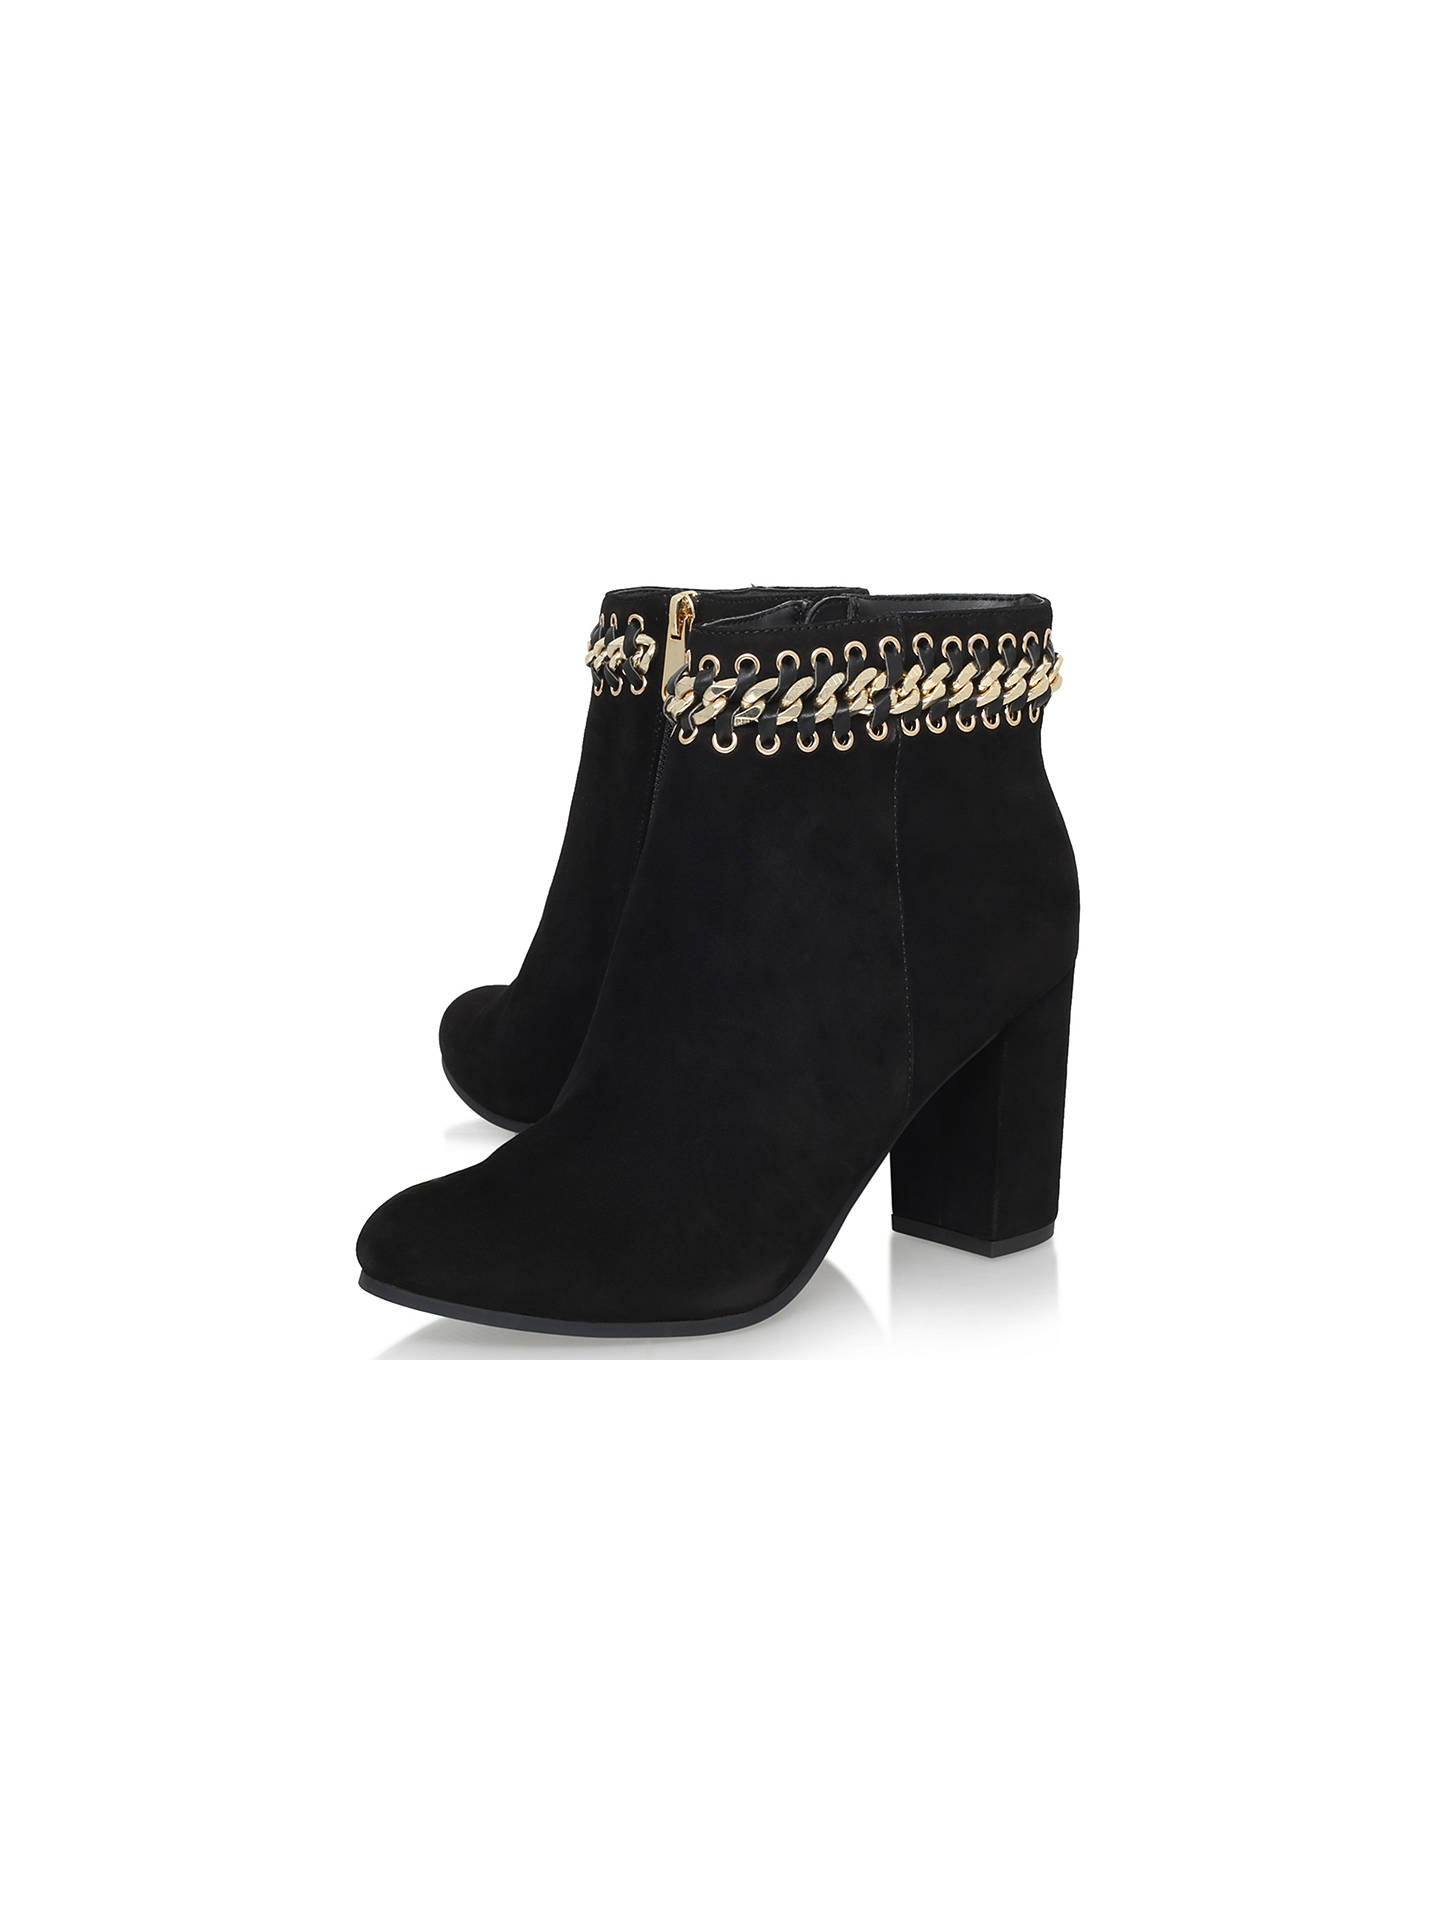 6fb2a43cb19 KG by Kurt Geiger Sphynx Chain Detail Ankle Boots, Black Suede at ...